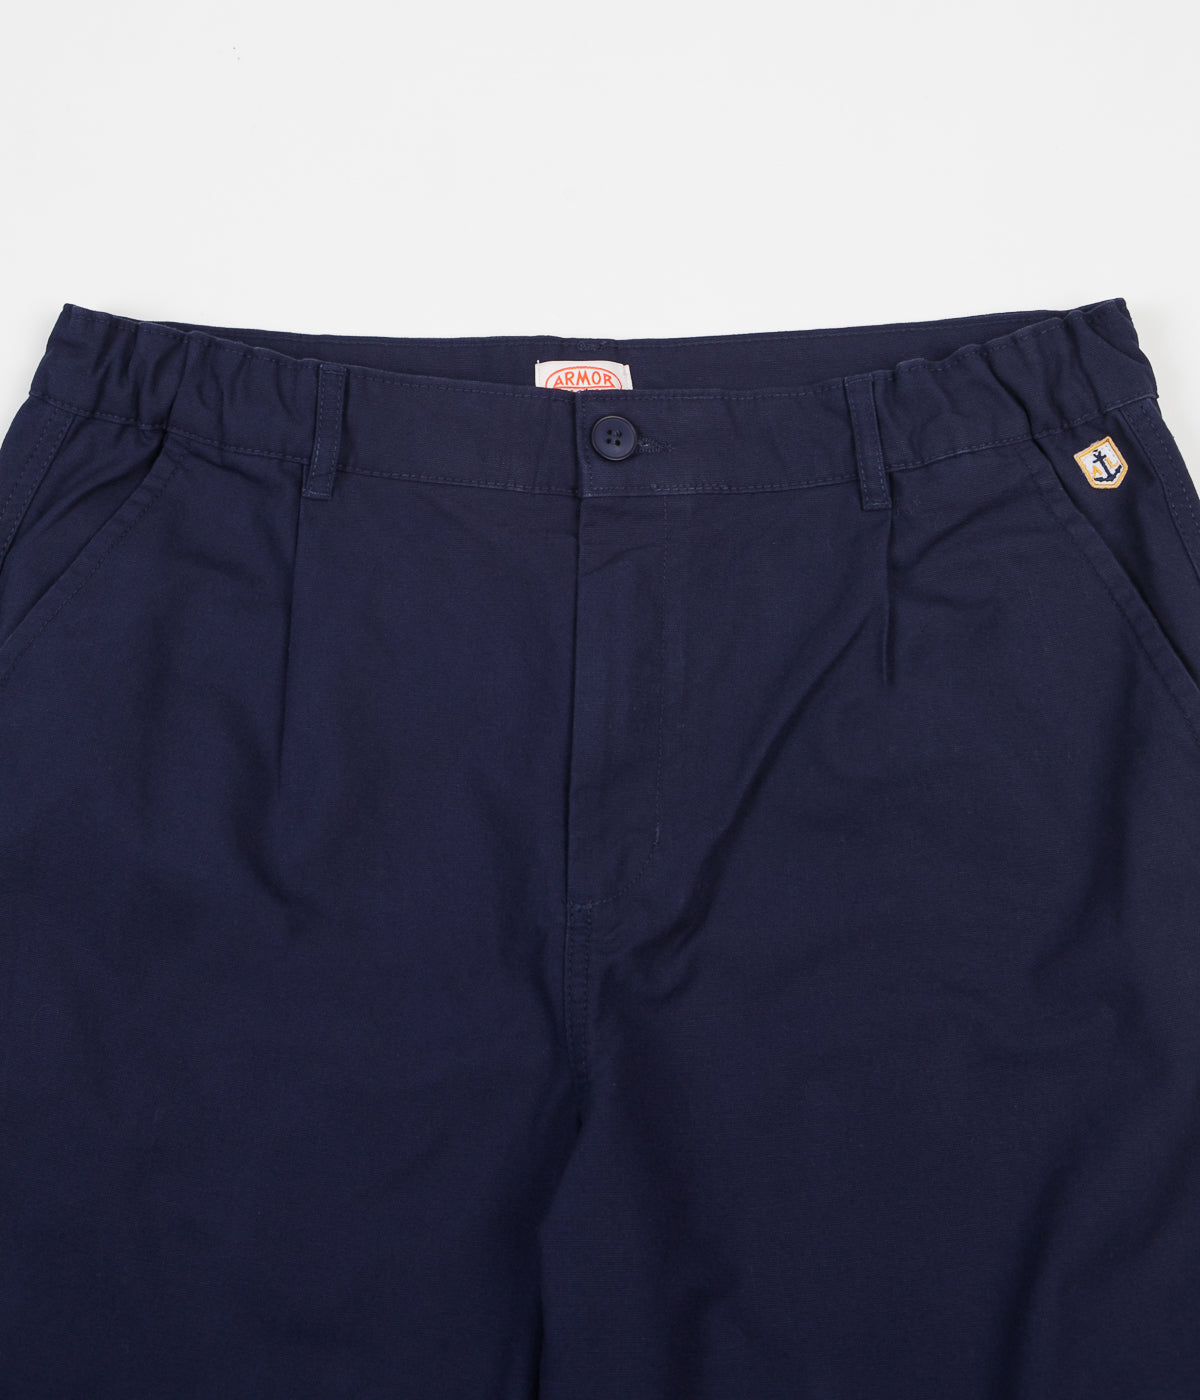 authentic cozy fresh cheap prices Armor Lux Bermuda Shorts - Navy | Flatspot